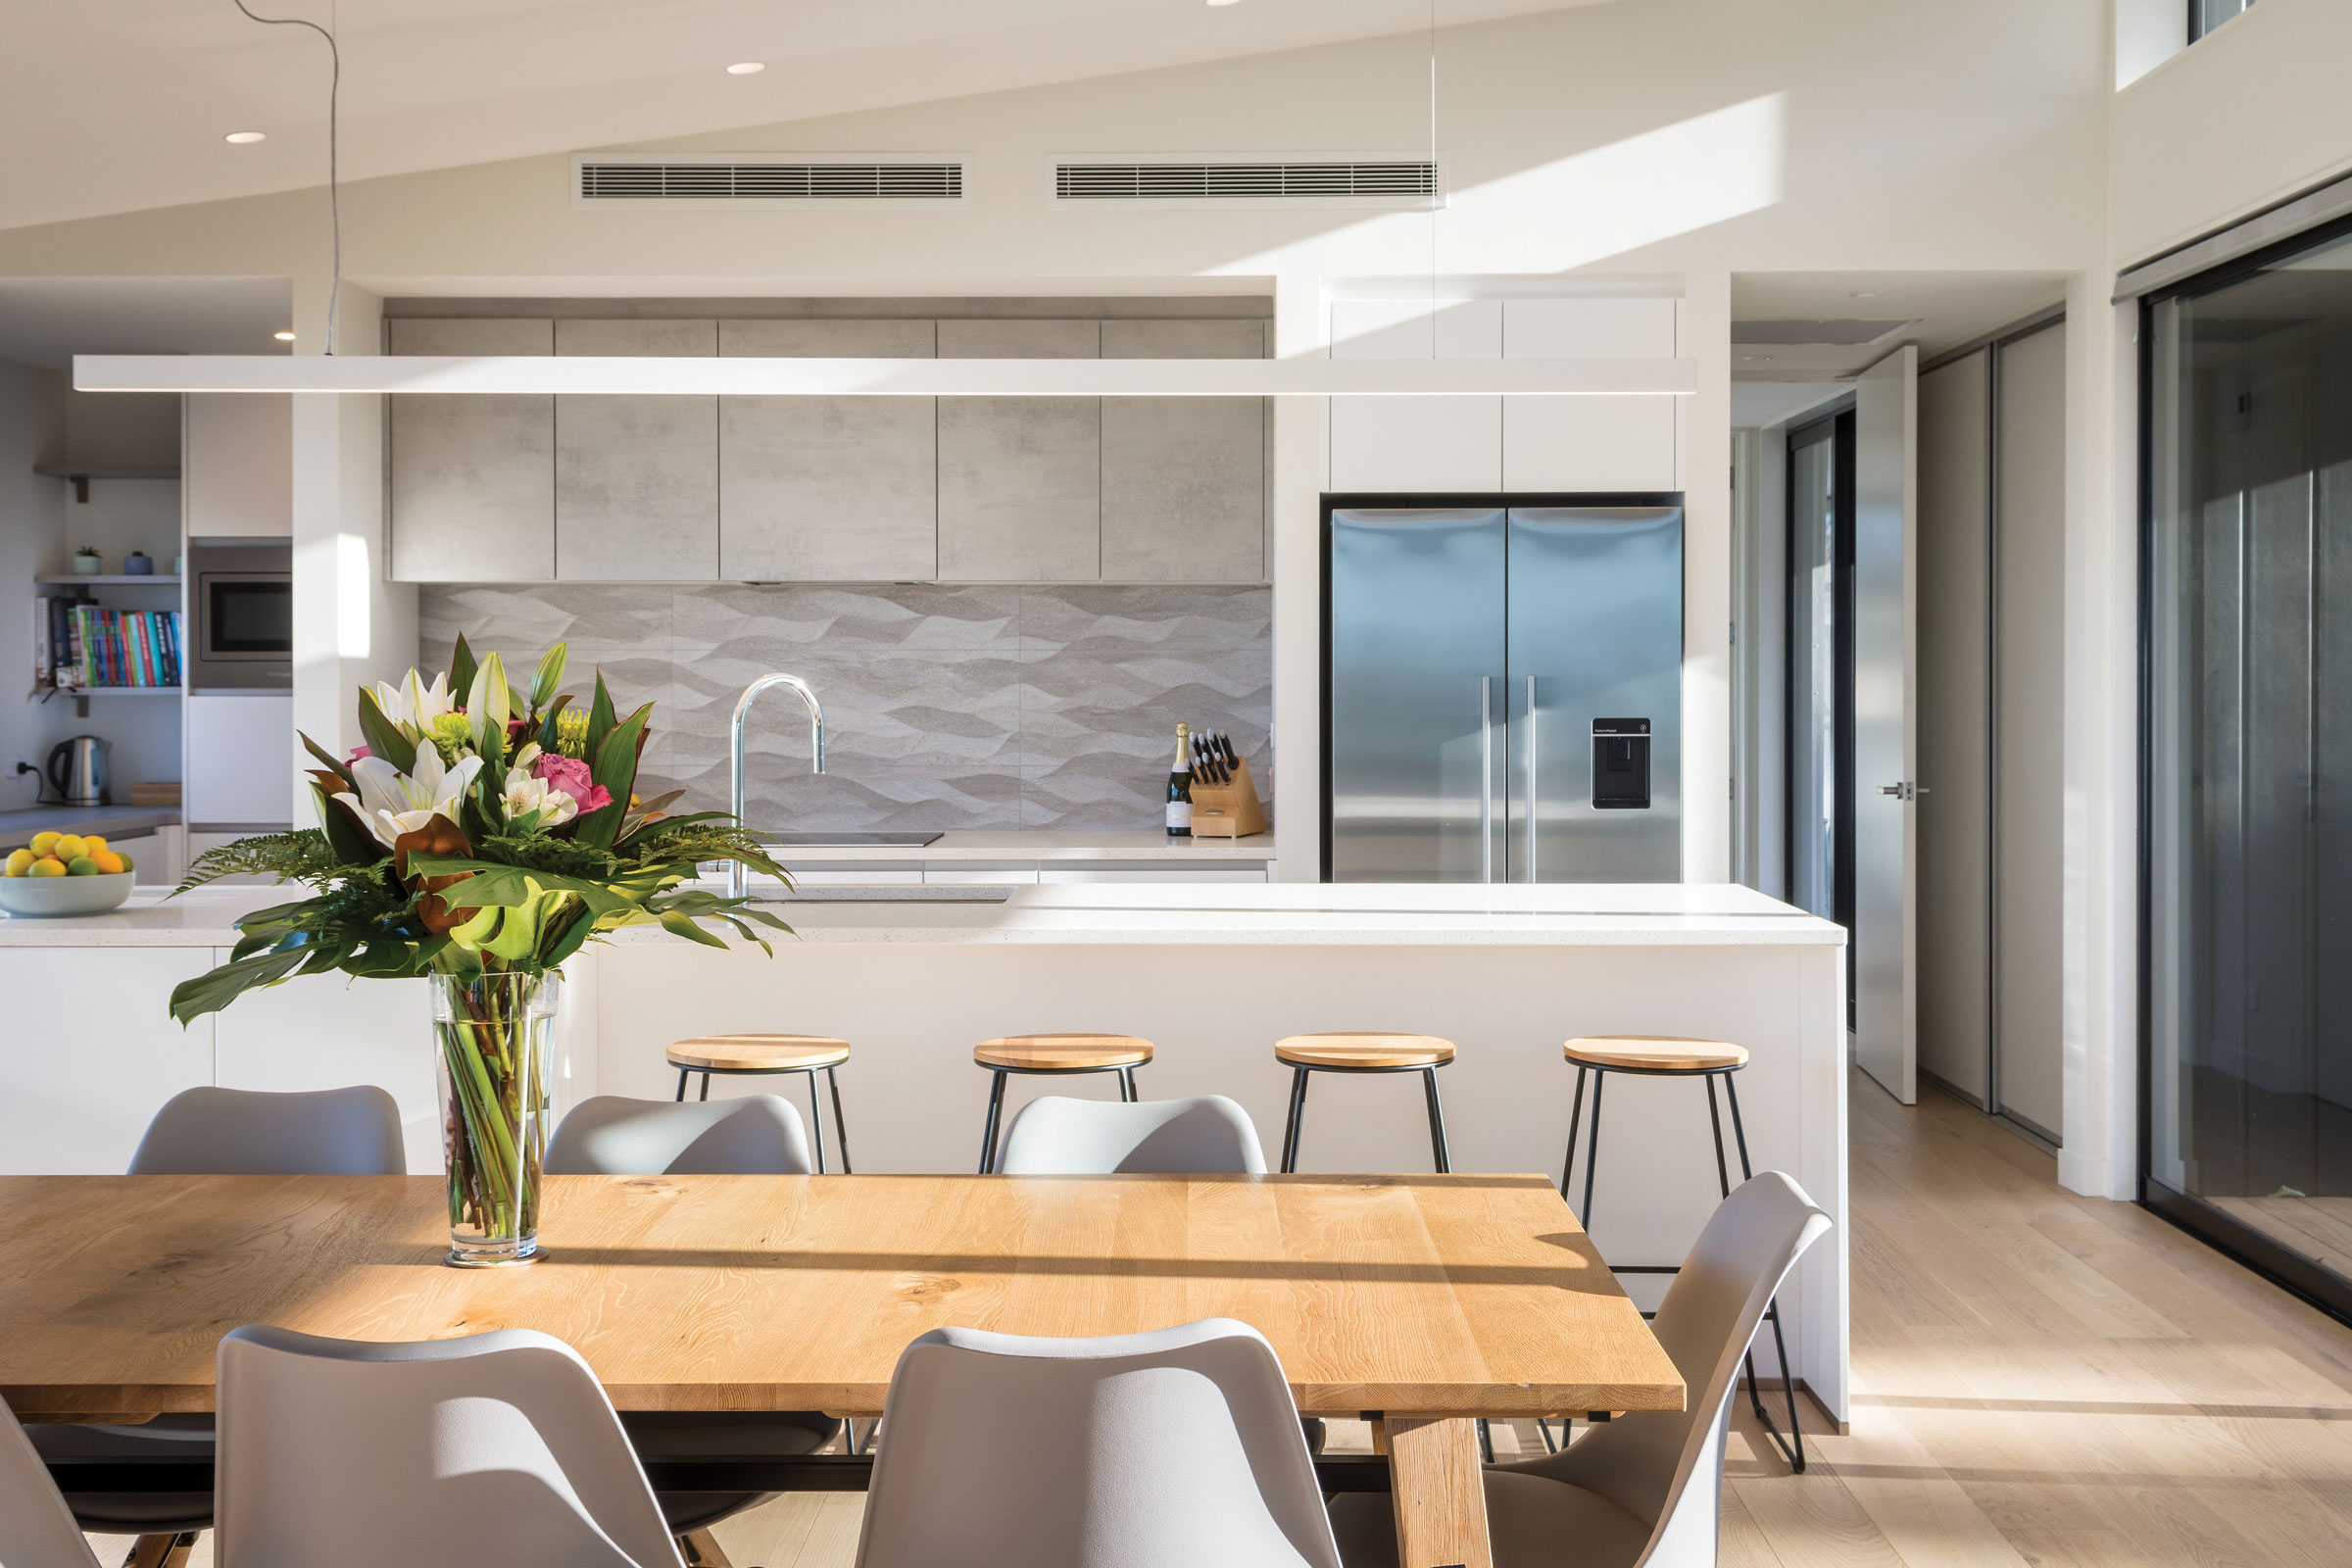 SPLASHBACK  Brymac Tiles supplied the 3D textured kitchen wall tiles, Ona Natural.